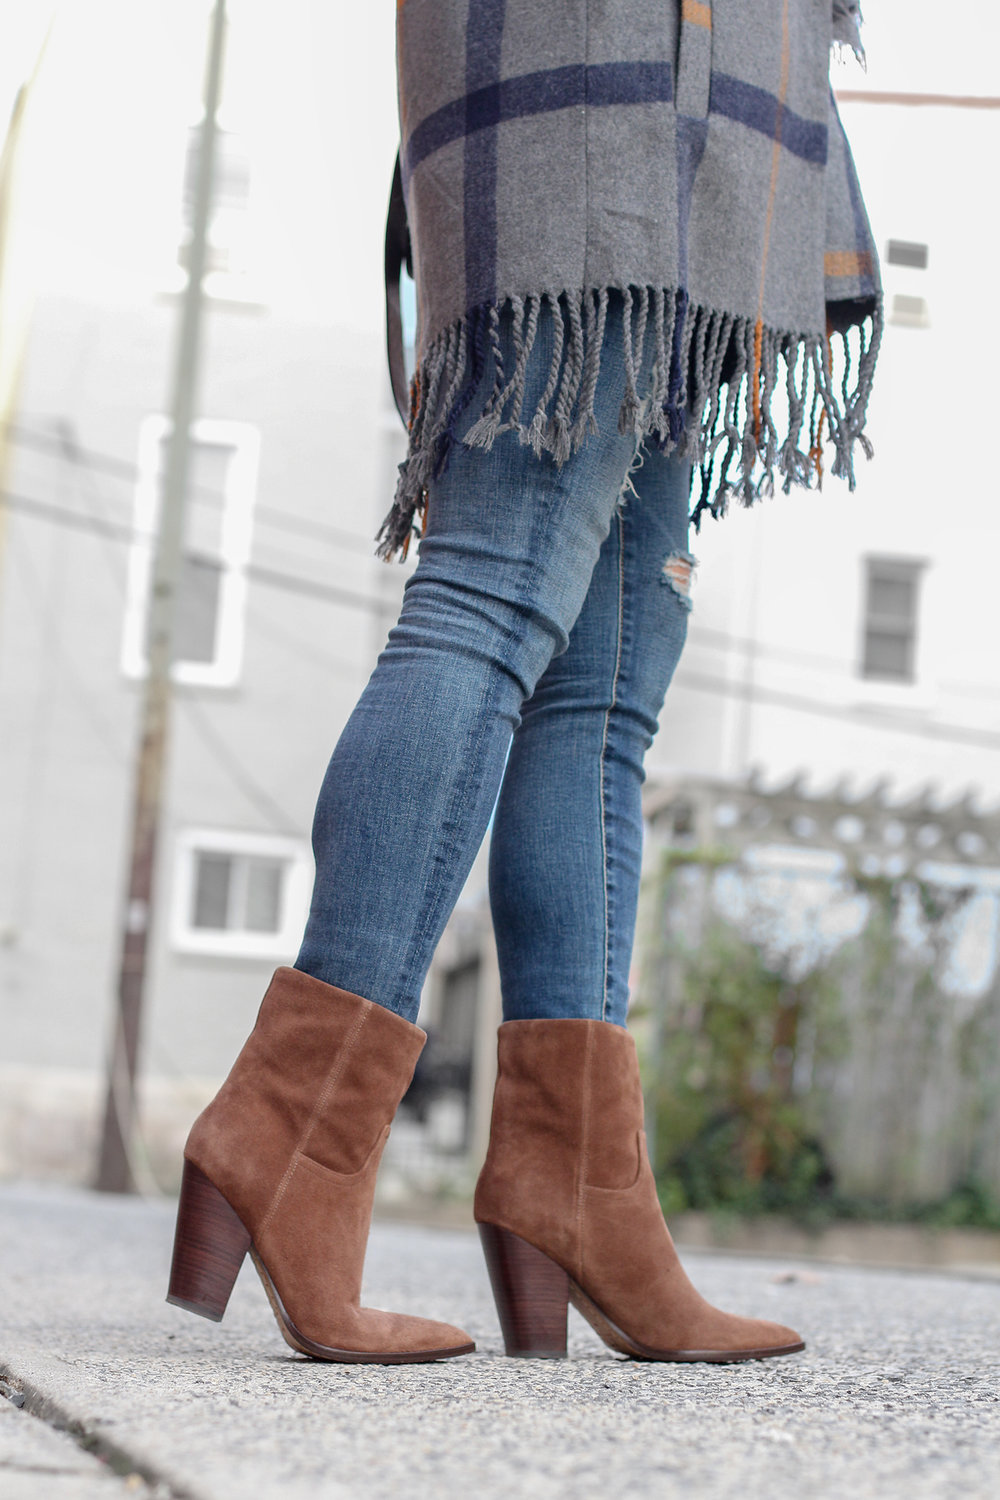 How to Style Cognac Boots, Cute Cognac Ankle Boots